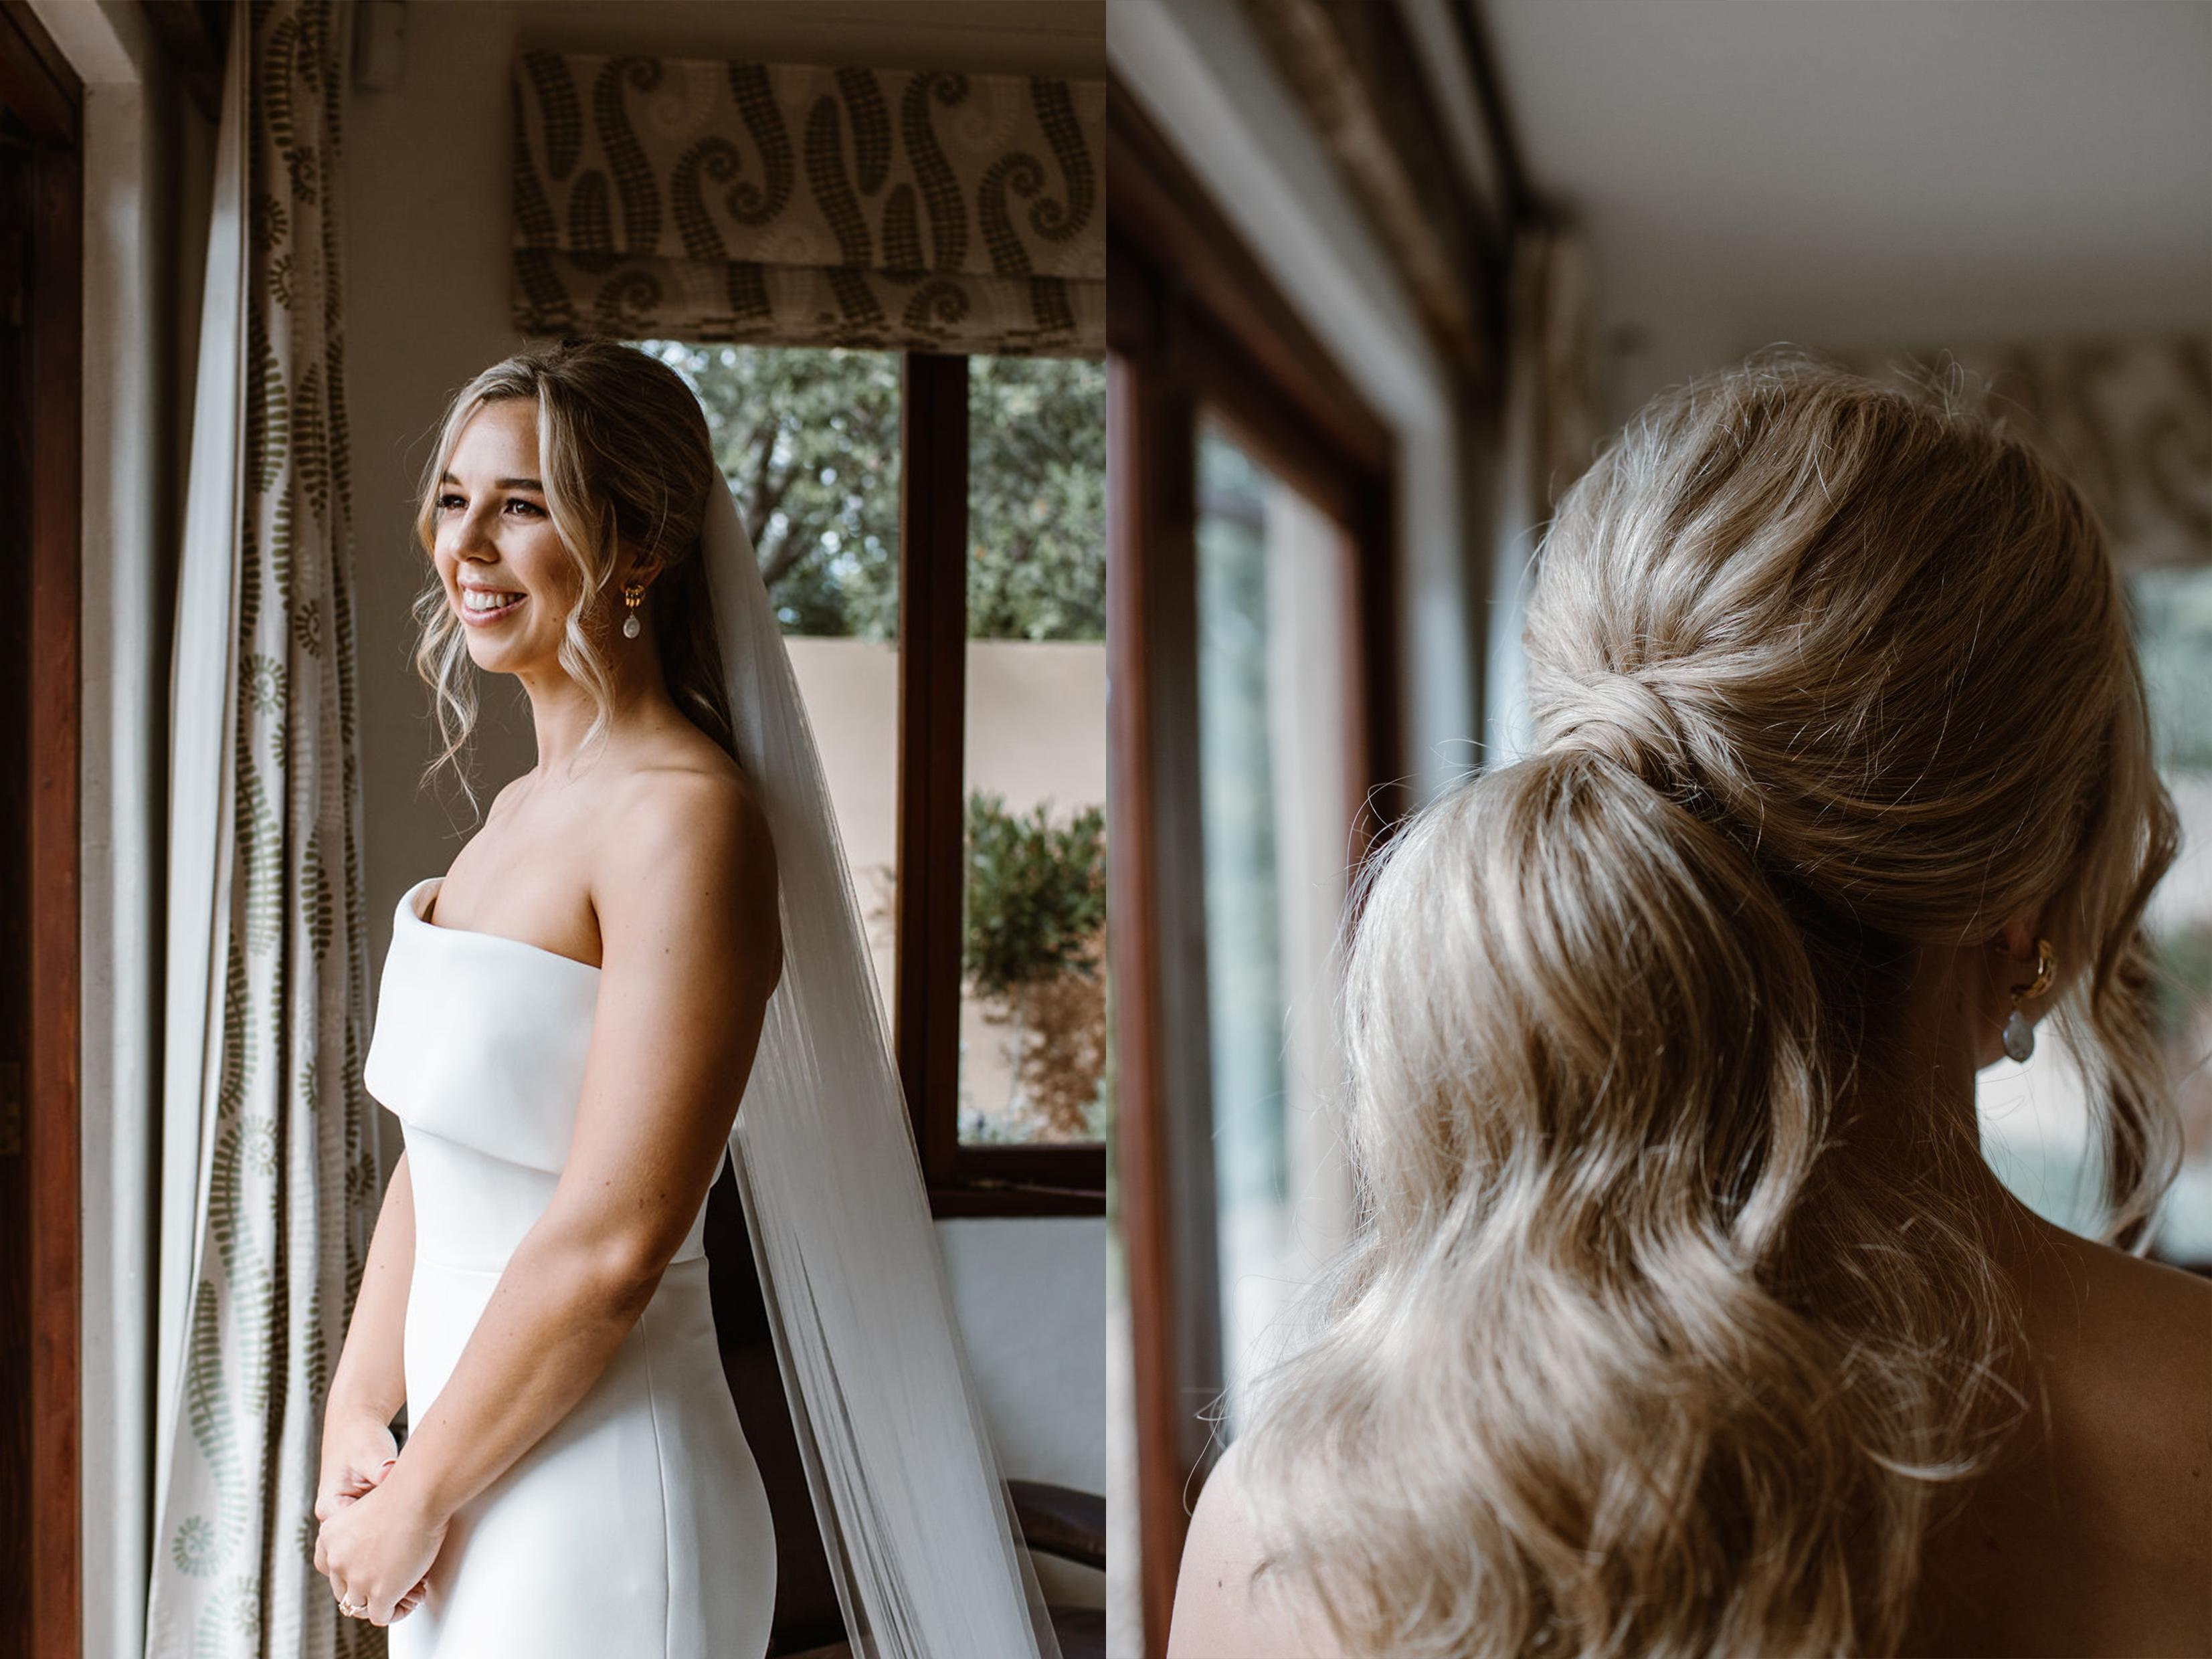 Auckland Hairdresser, Romatic wedding Hairstyle, Bridal Party Hairdresser, Waiheke island wedding